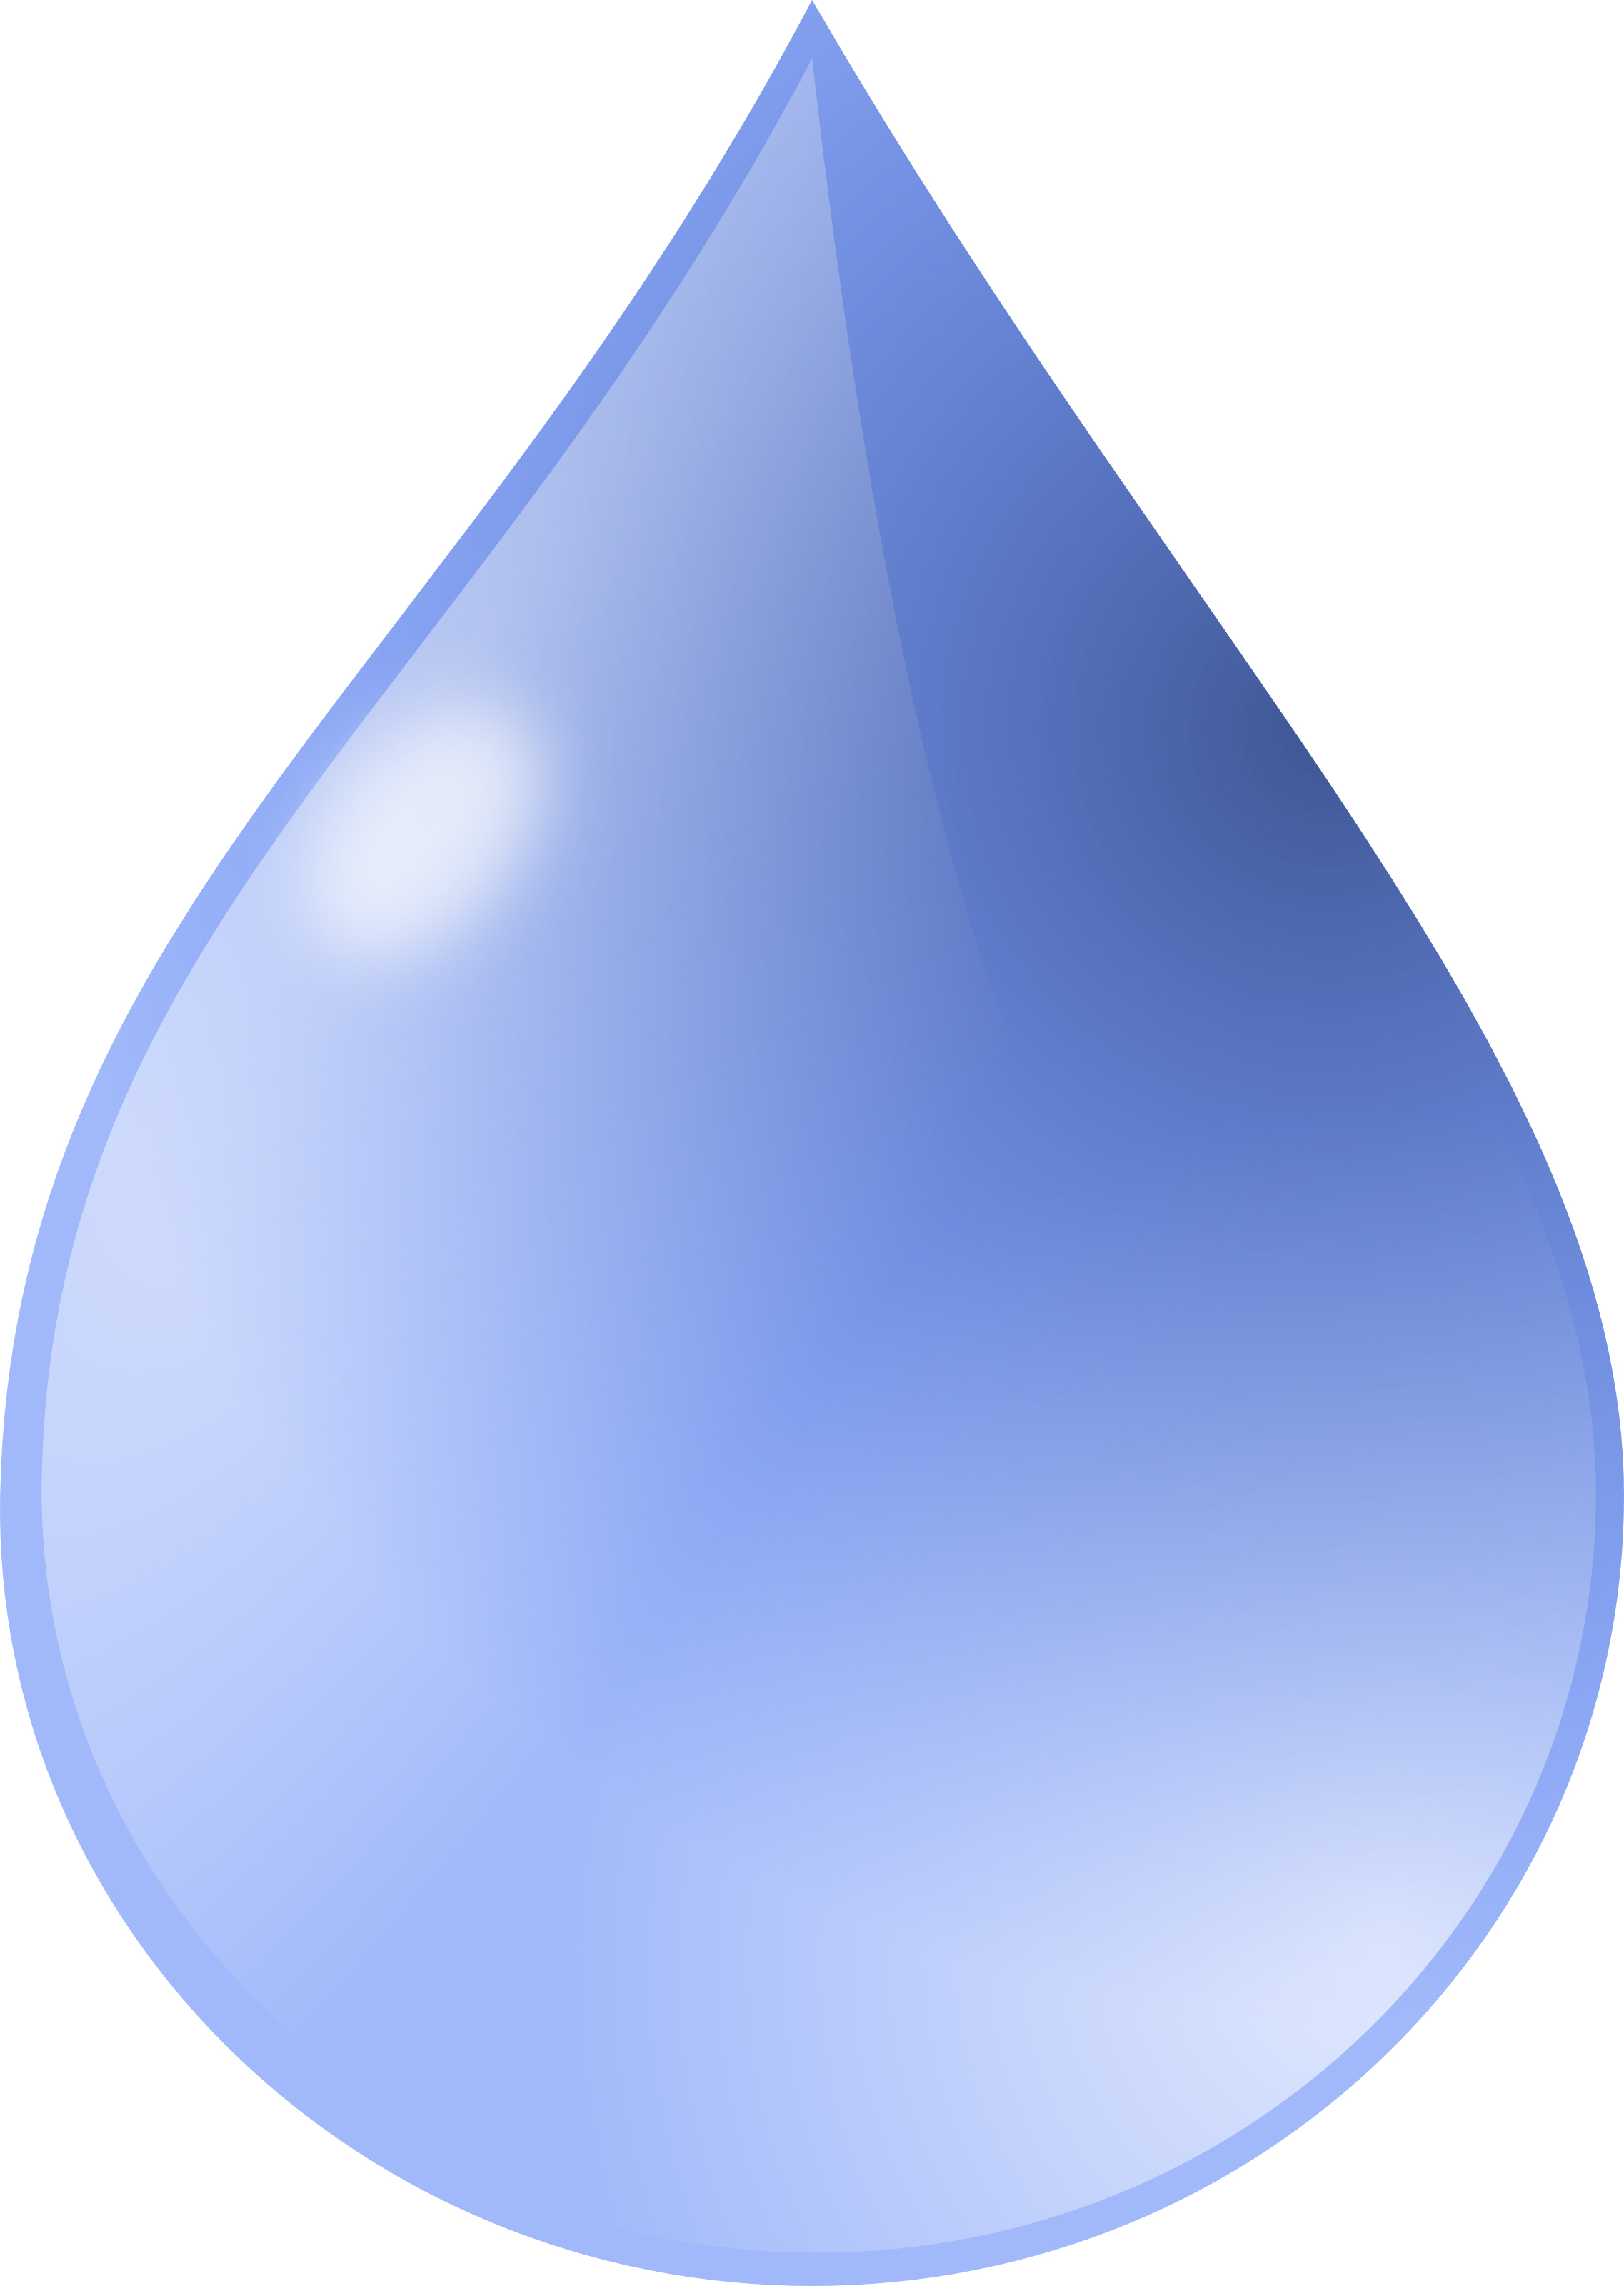 Water Drops clipart #16, Download drawings